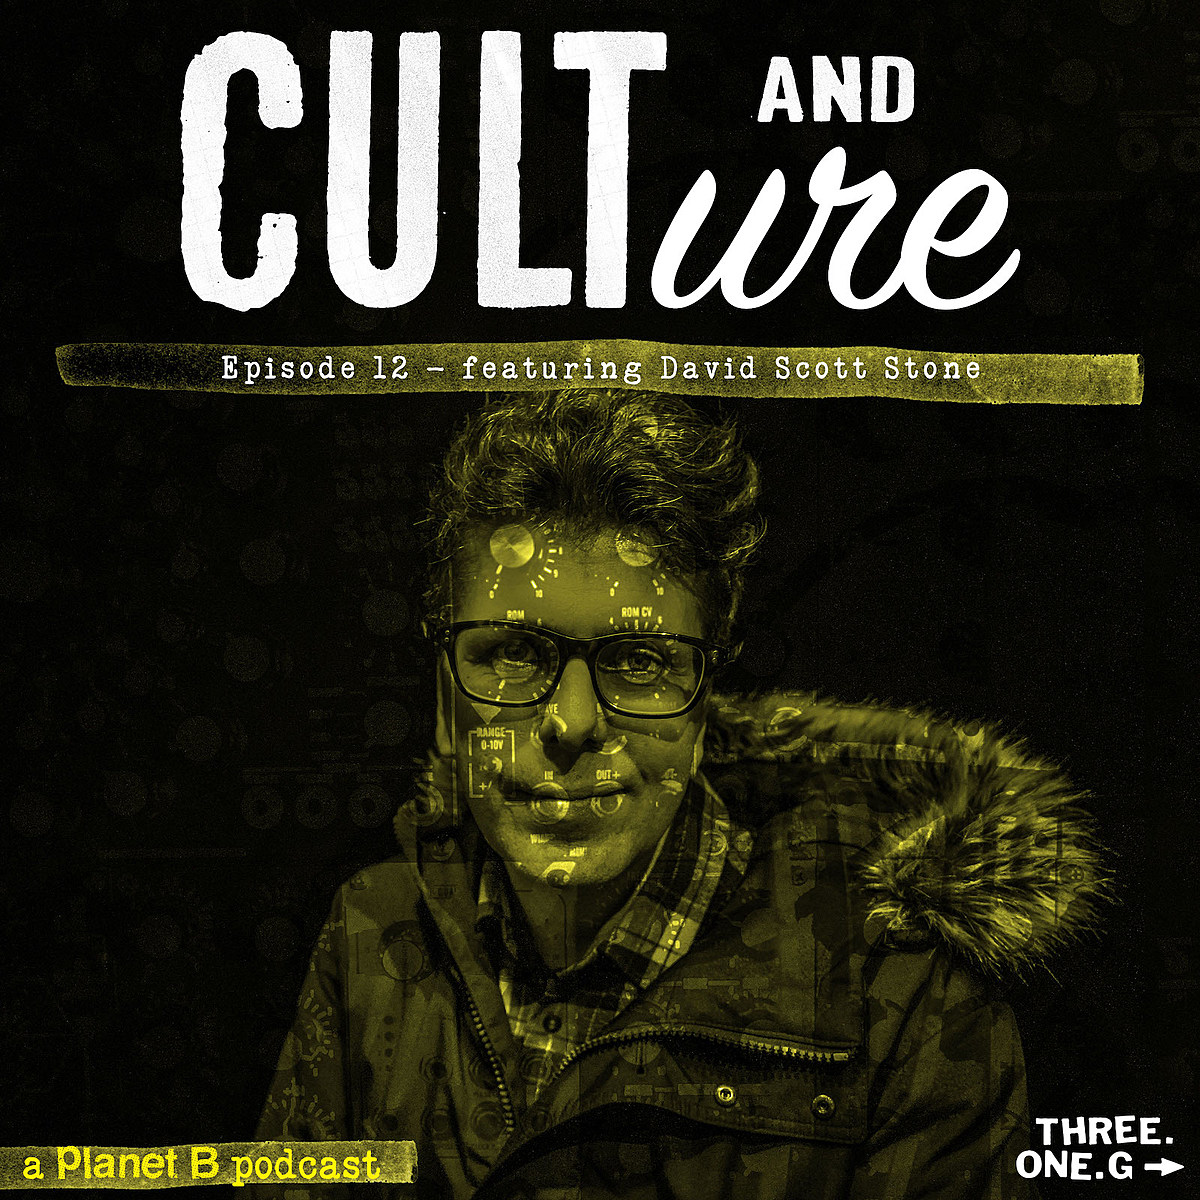 David Scott Stone (Melvins, Unwound, LCD Soundsystem) guests on new 'Cult Culture' podcast (listen)